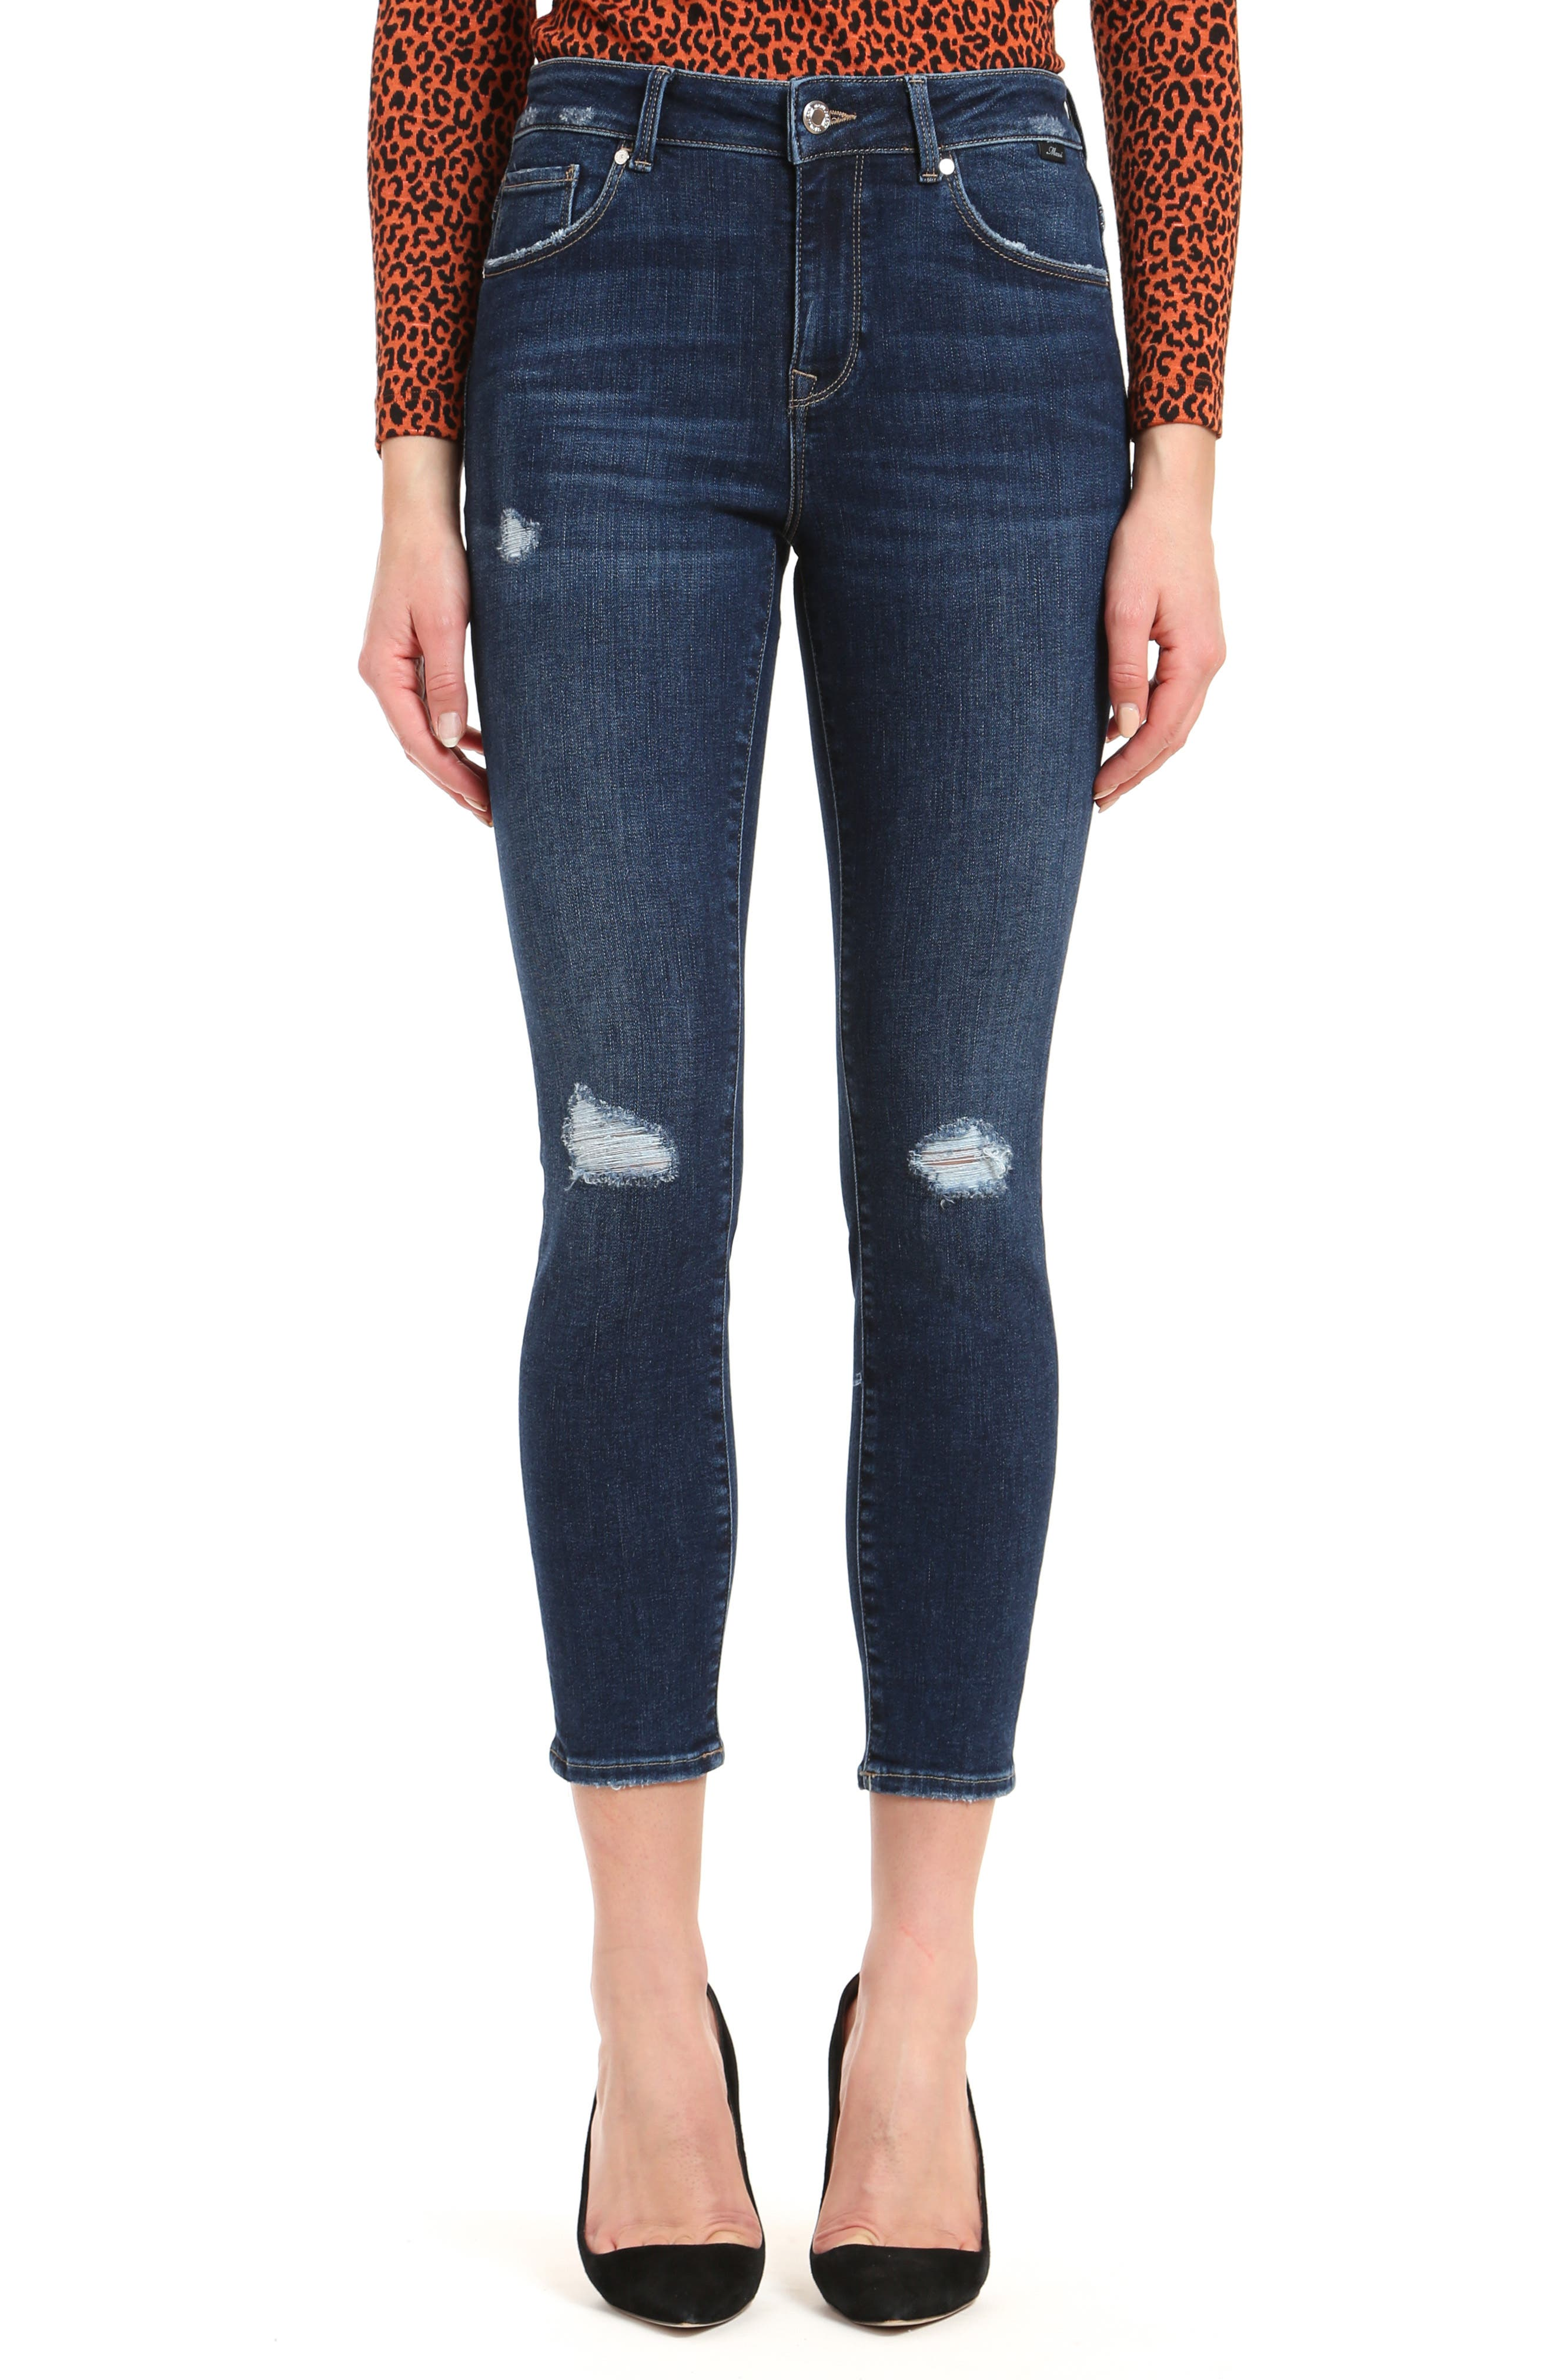 Made from incredibly soft denim with just-right stretch, these distressed skinny jeans are meant to be worn a few times before washing. Style Name: Mavi Jeans Tess Ripped High Waist Ankle Skinny Jeans (Organic Blue). Style Number: 6124860. Available in stores.